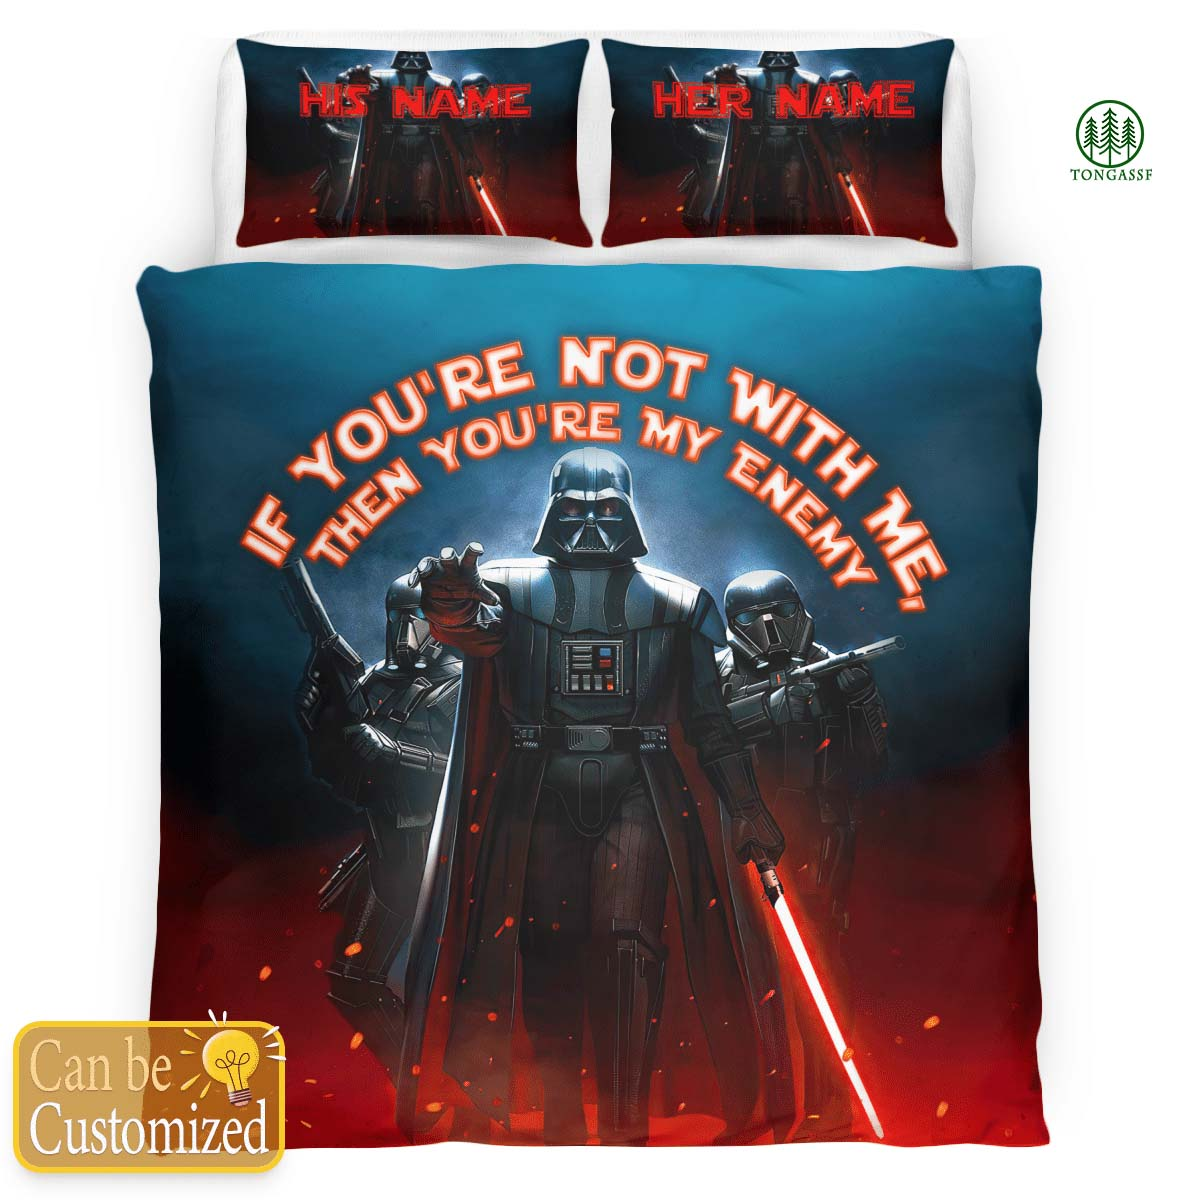 Personalized Star Wars Darth Vader If You Are Not With Me Then You Are My Enemy Bedding Set